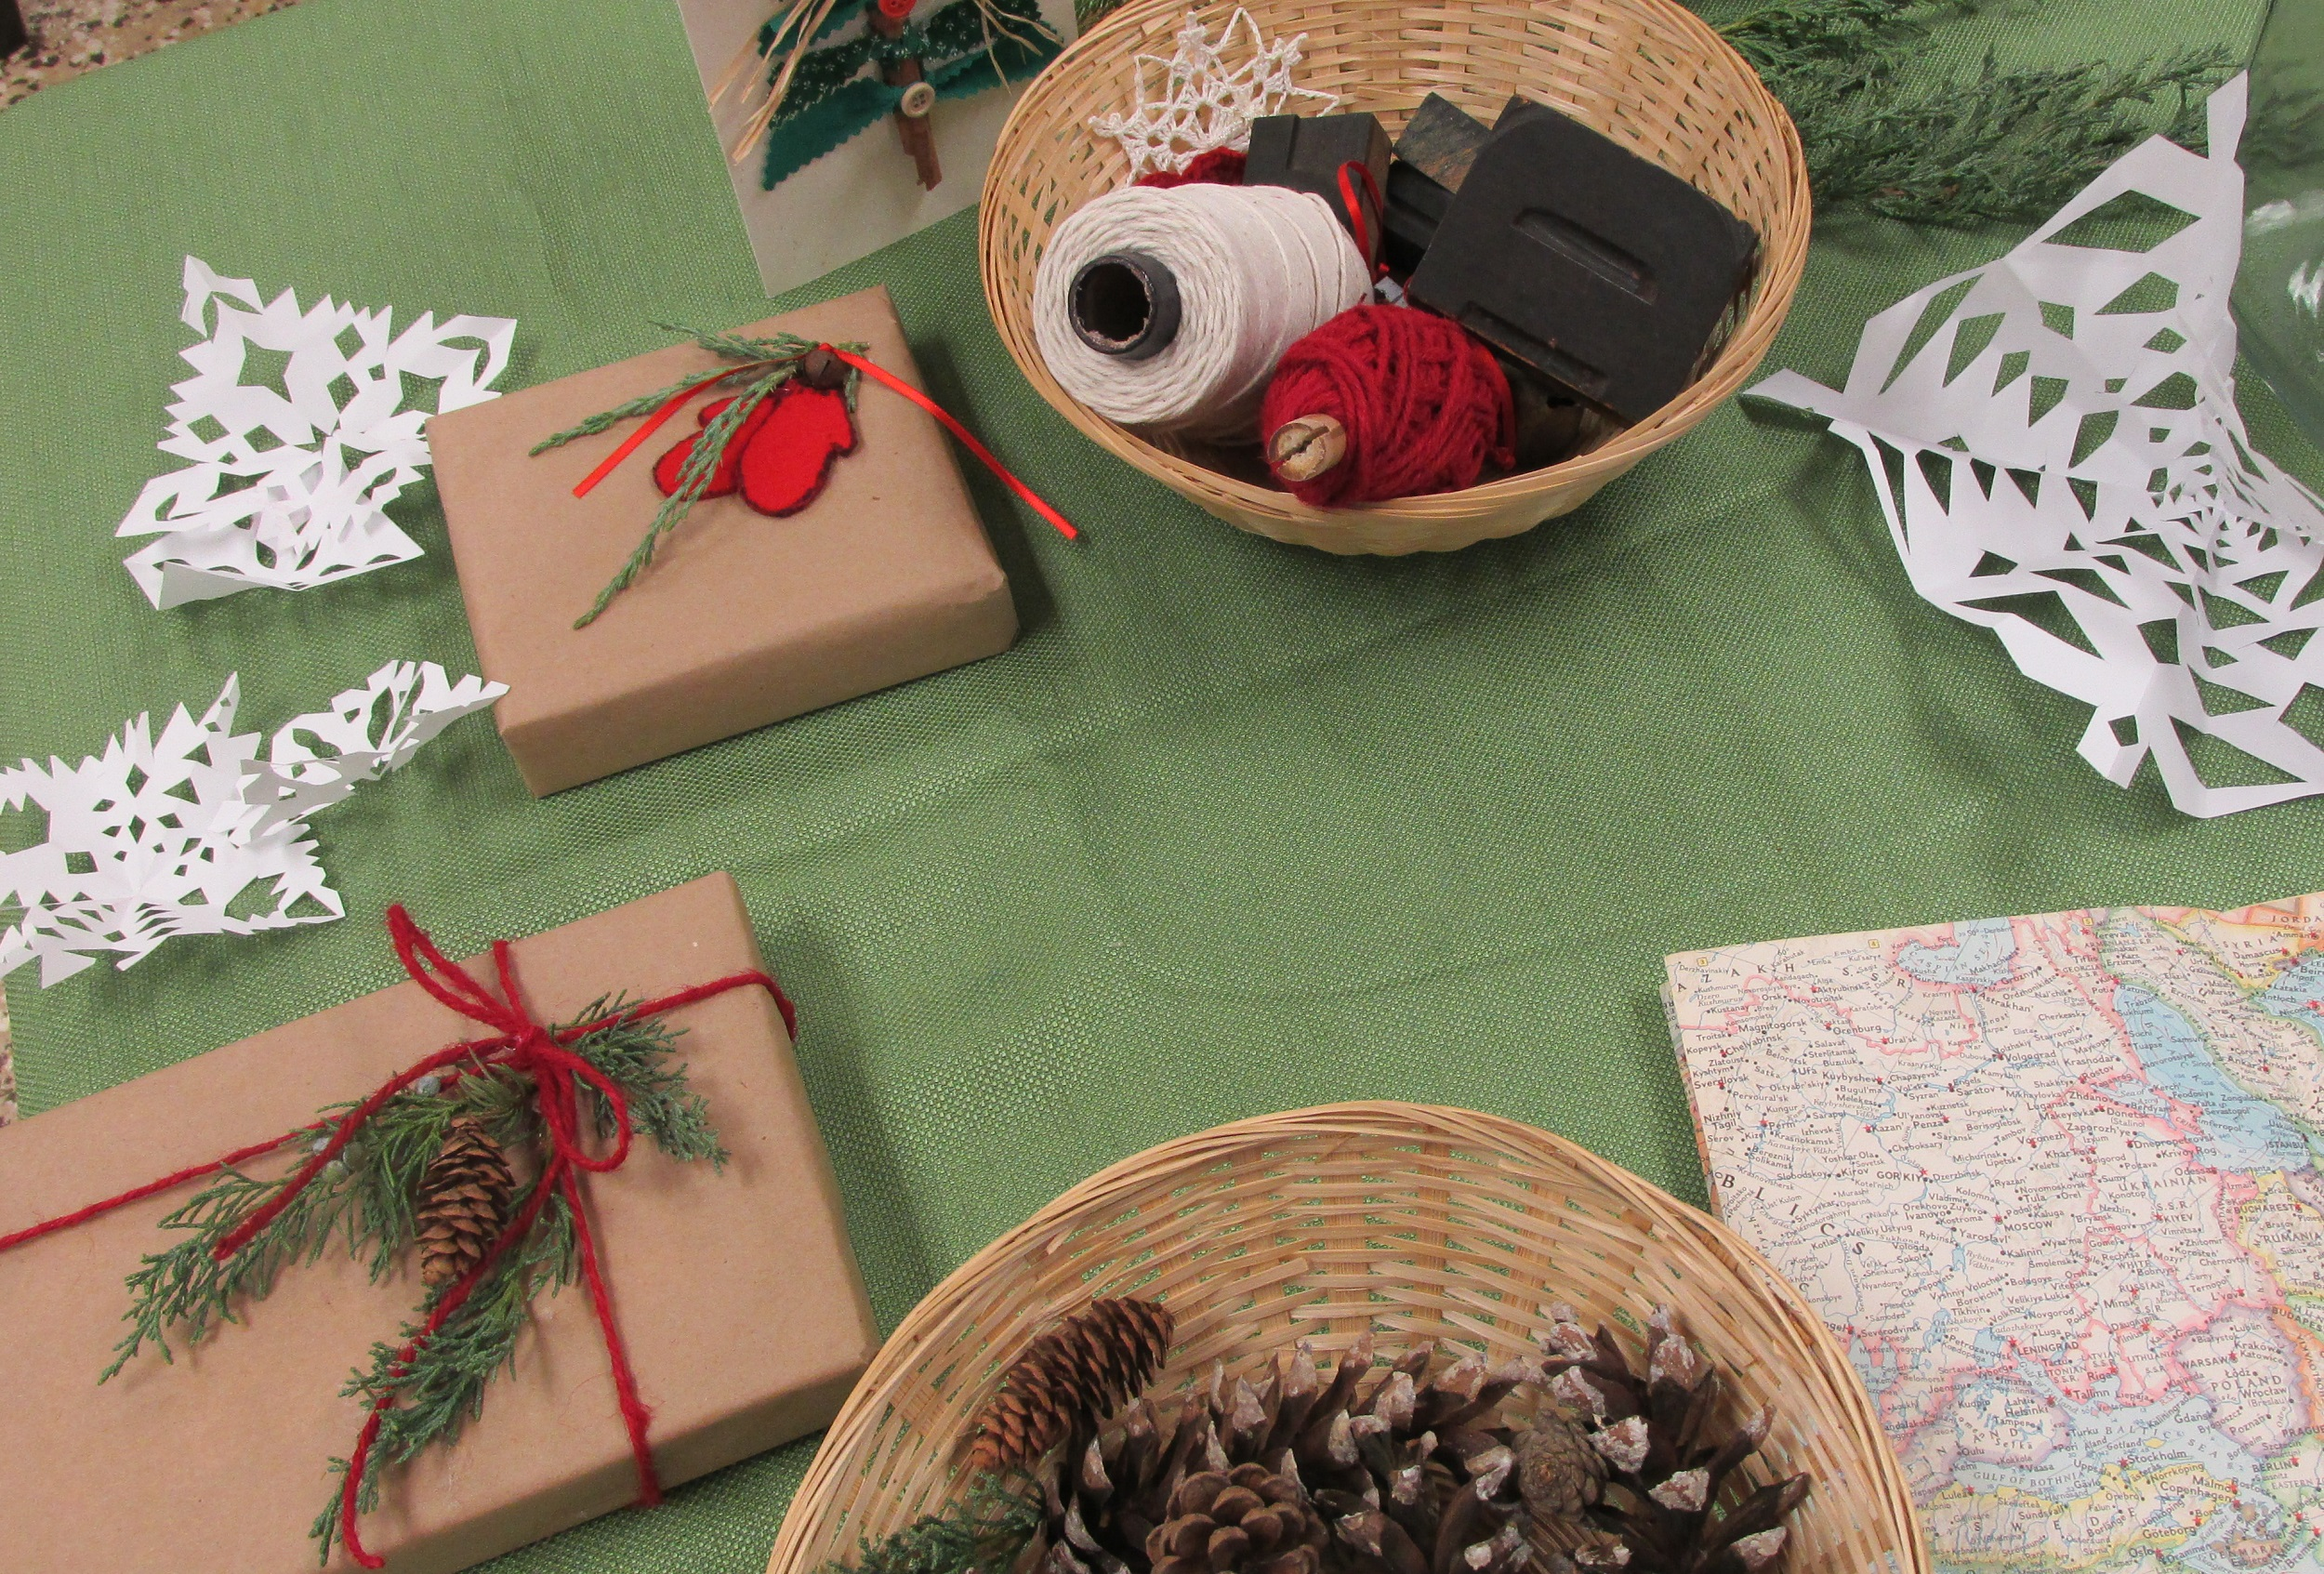 Table with wrapped presents, paper snowflakes, and pinecones